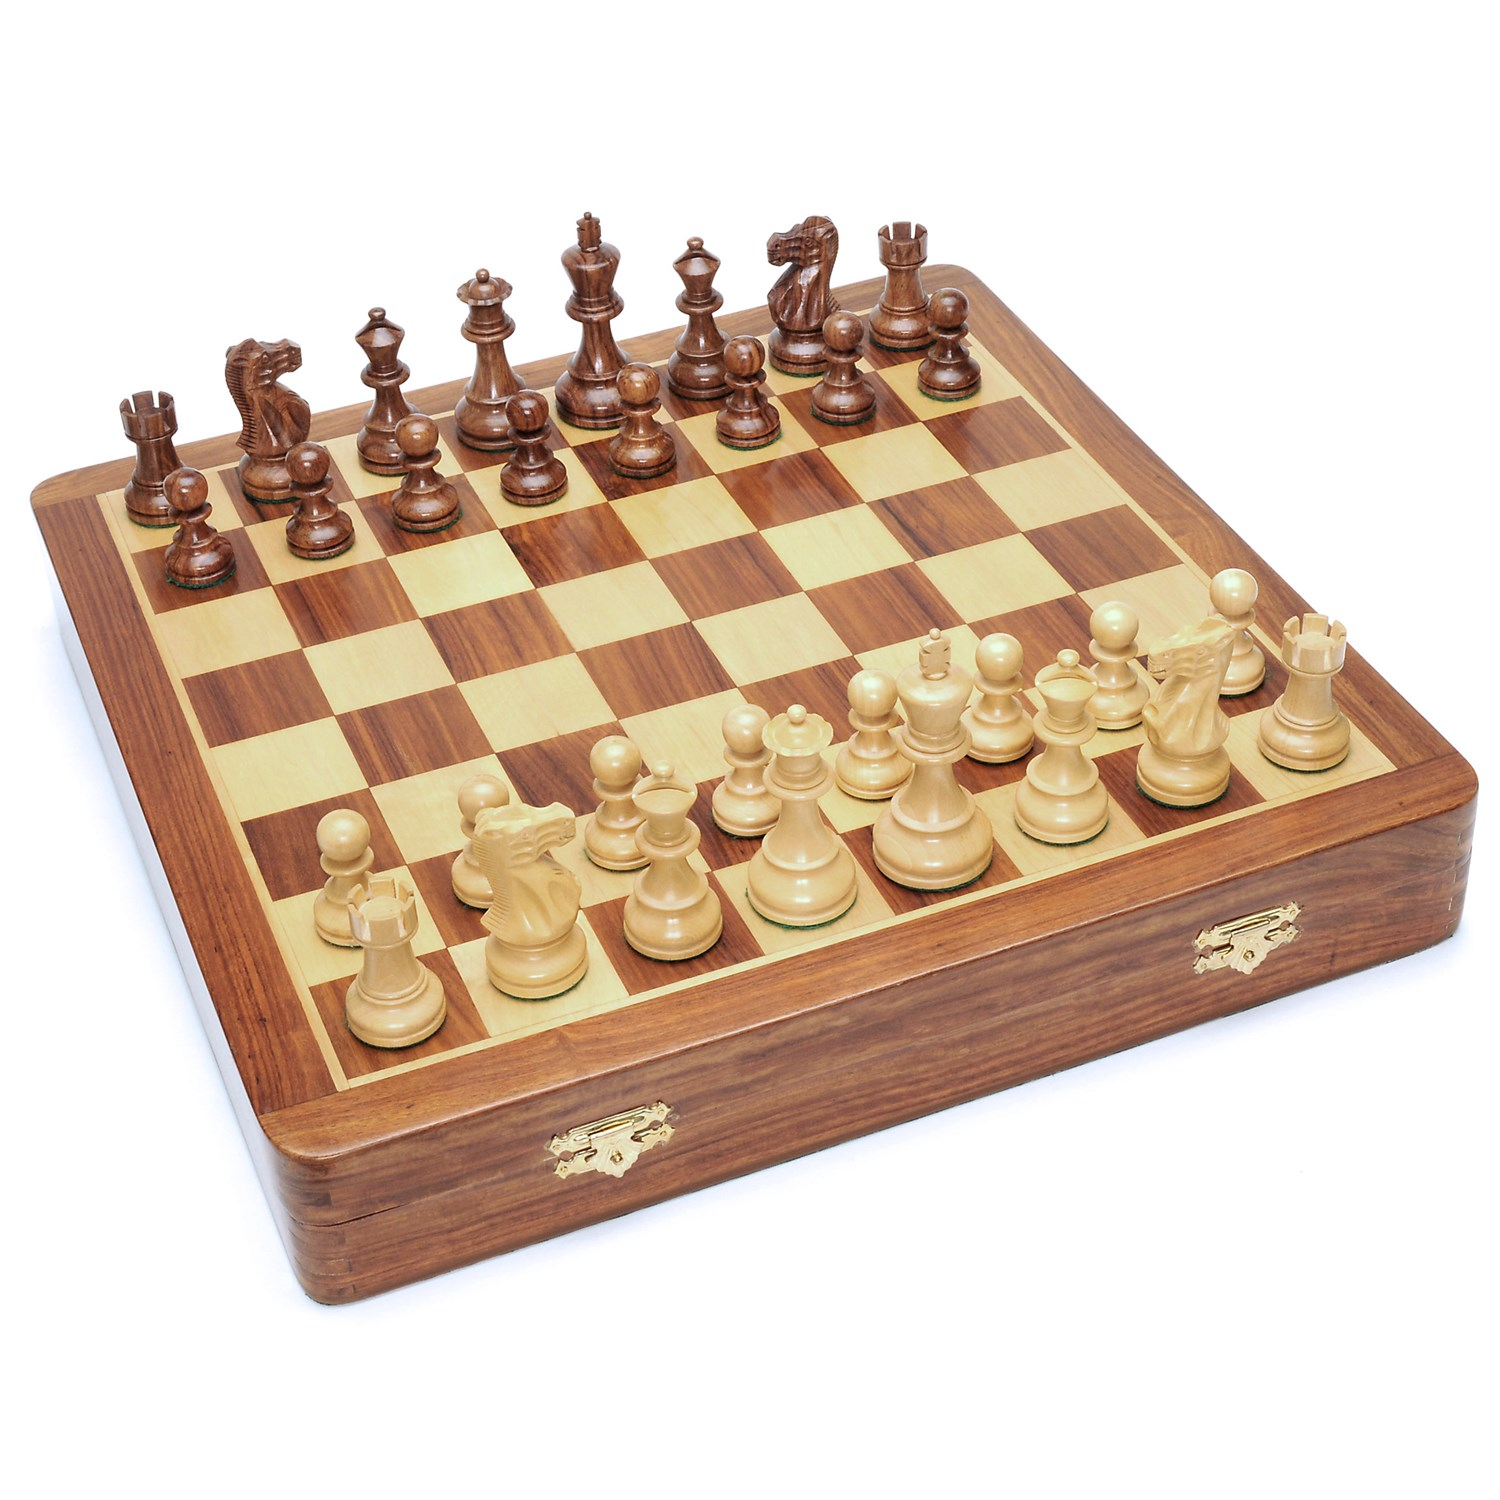 Deluxe english style chess set in wooden case felt storage for handcarved pieces wooden - Deluxe chess sets ...